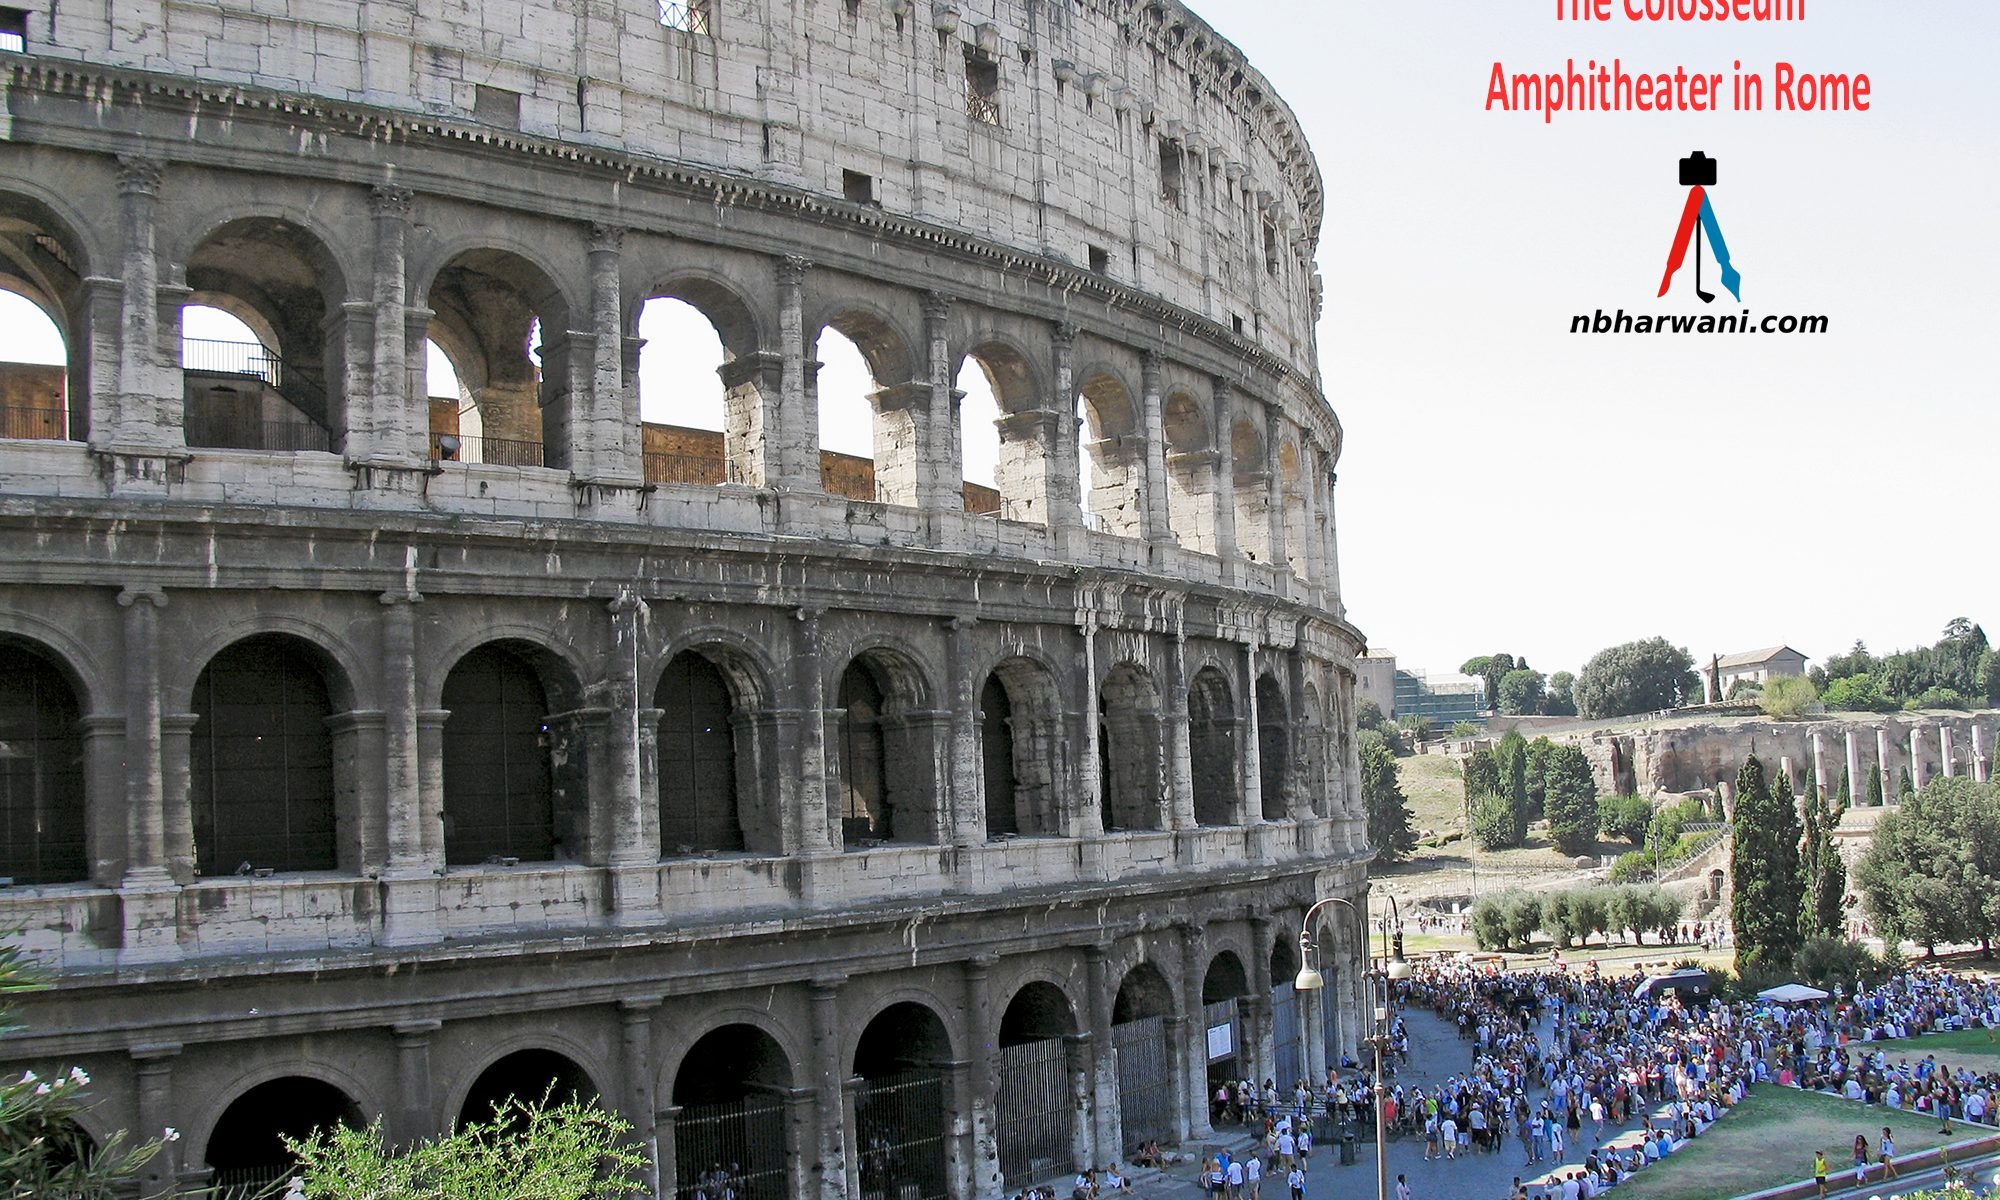 The Colosseum or Coliseum, also known as the Flavian Amphitheatre, in the city of Rome, Italy. (Dr. Noorali Bharwani)